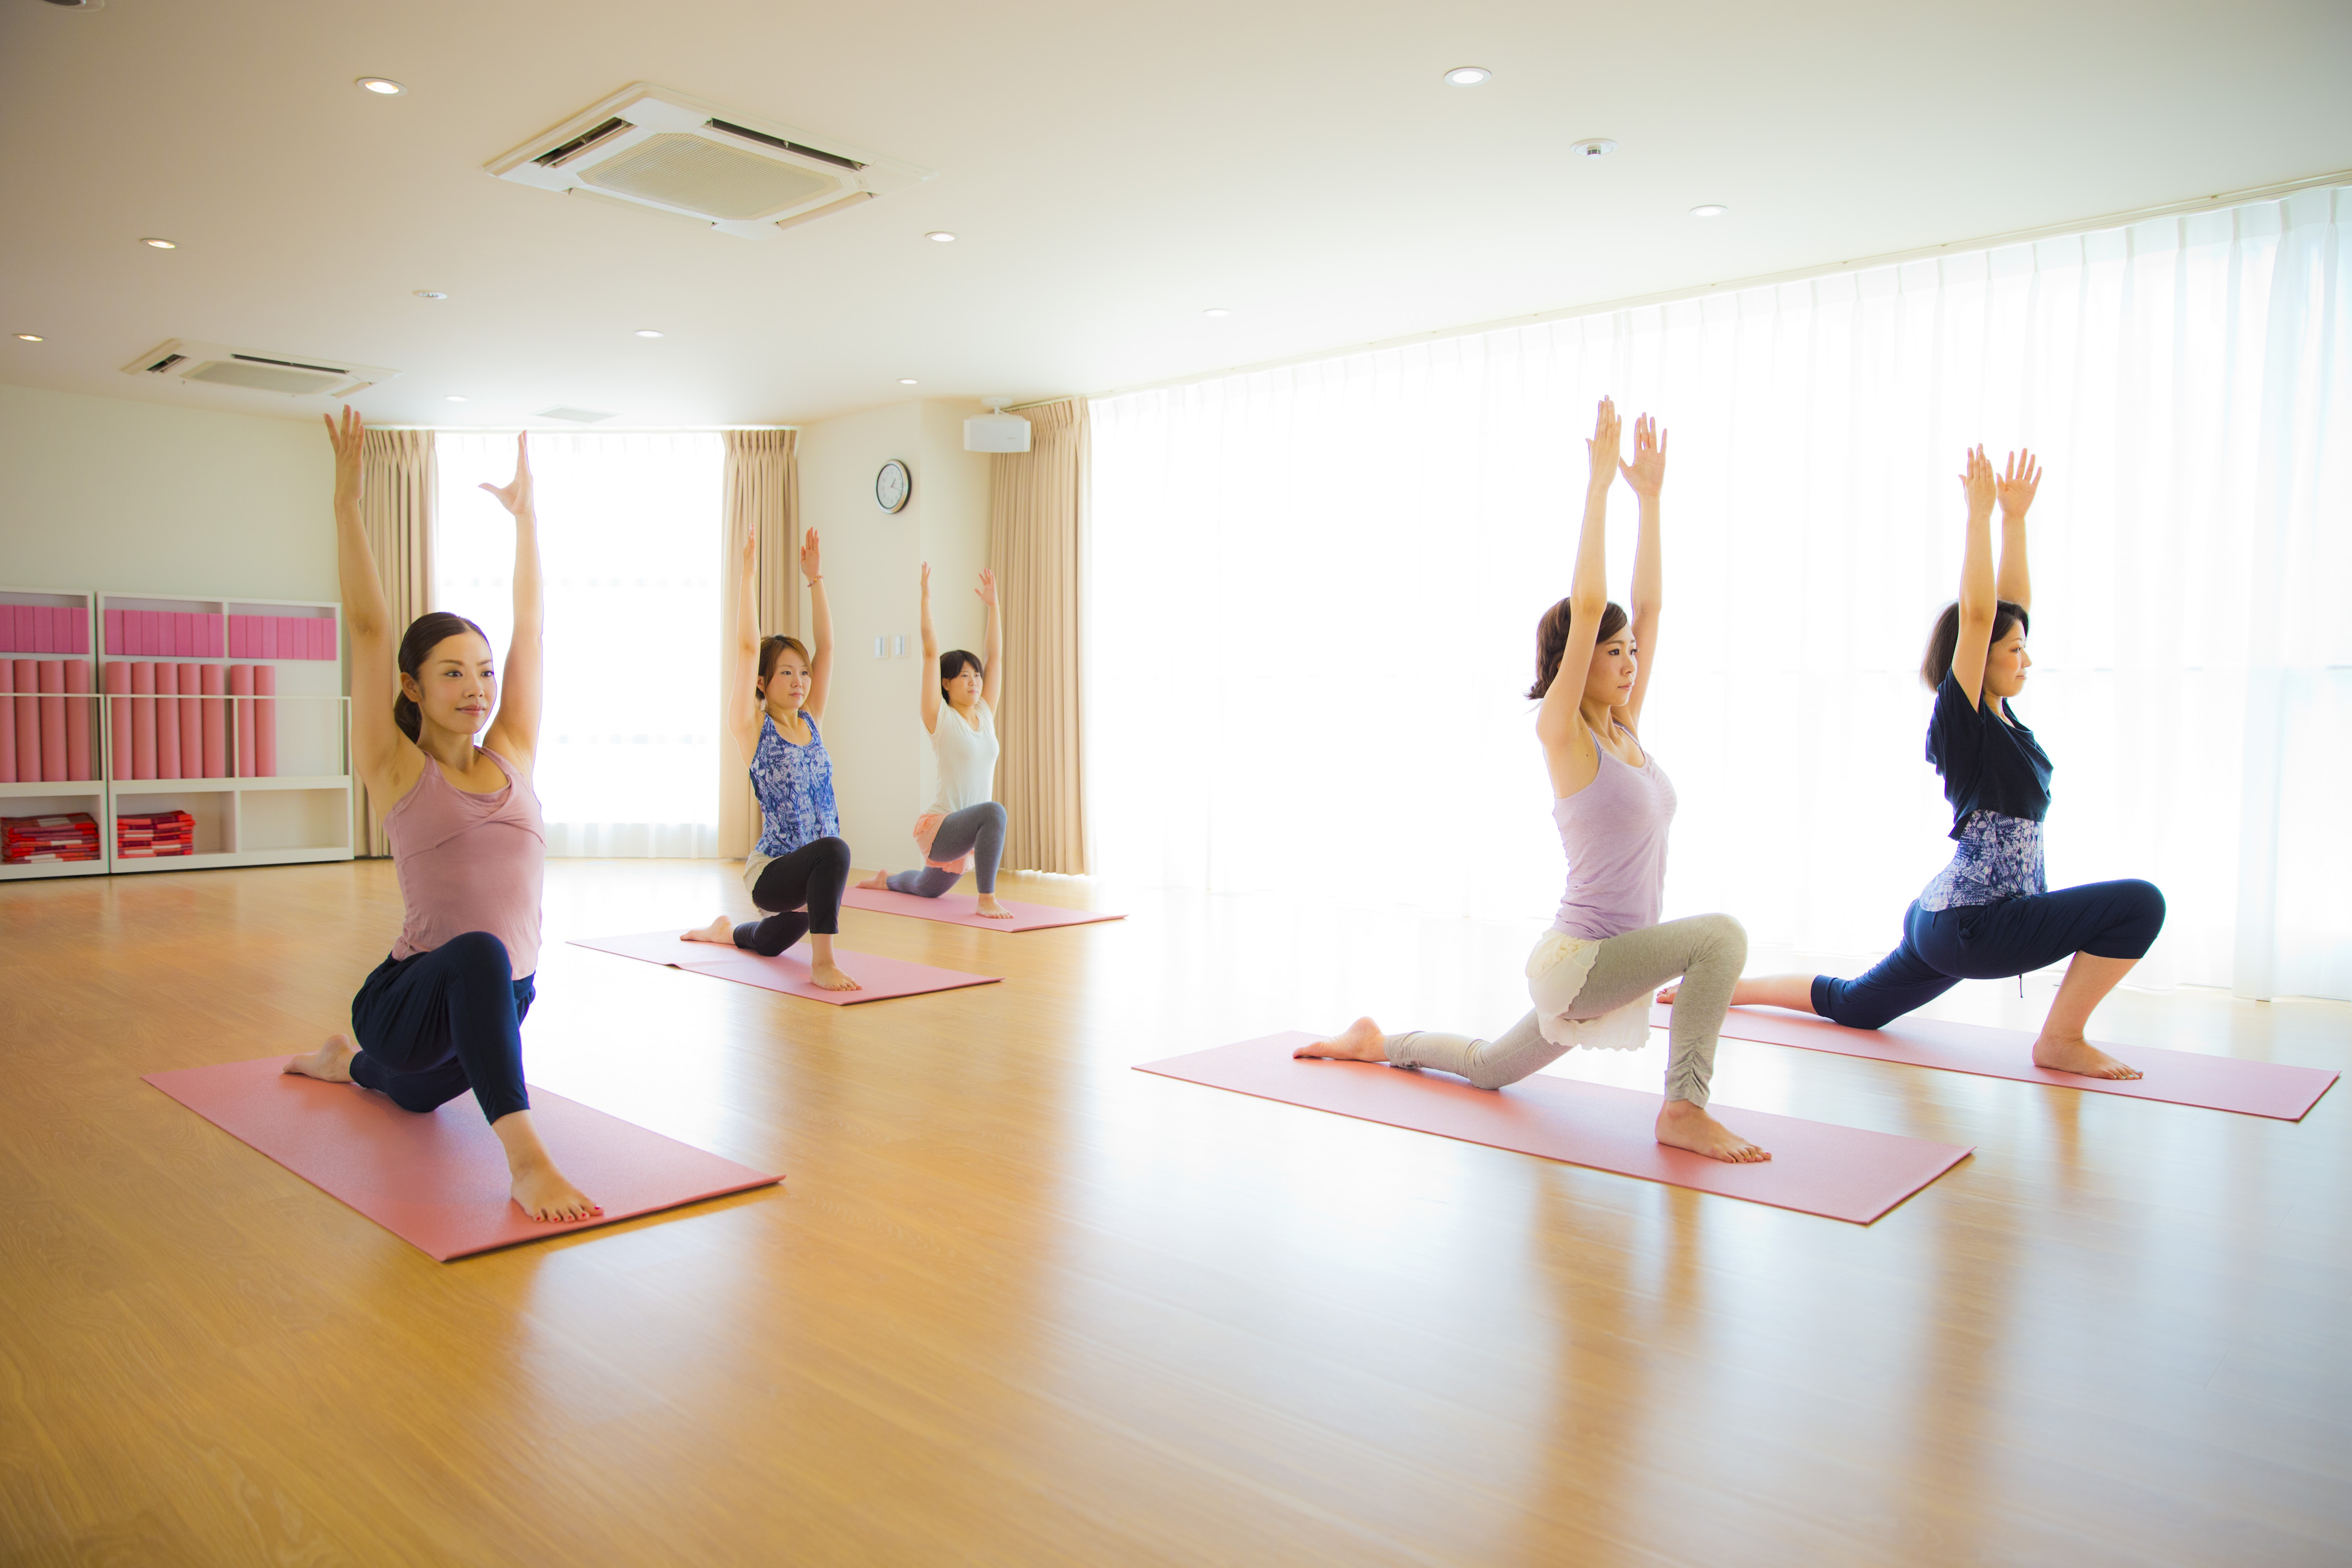 YOGA and BEAUTY STUDIO CHIAKISS - チアキス -の写真2